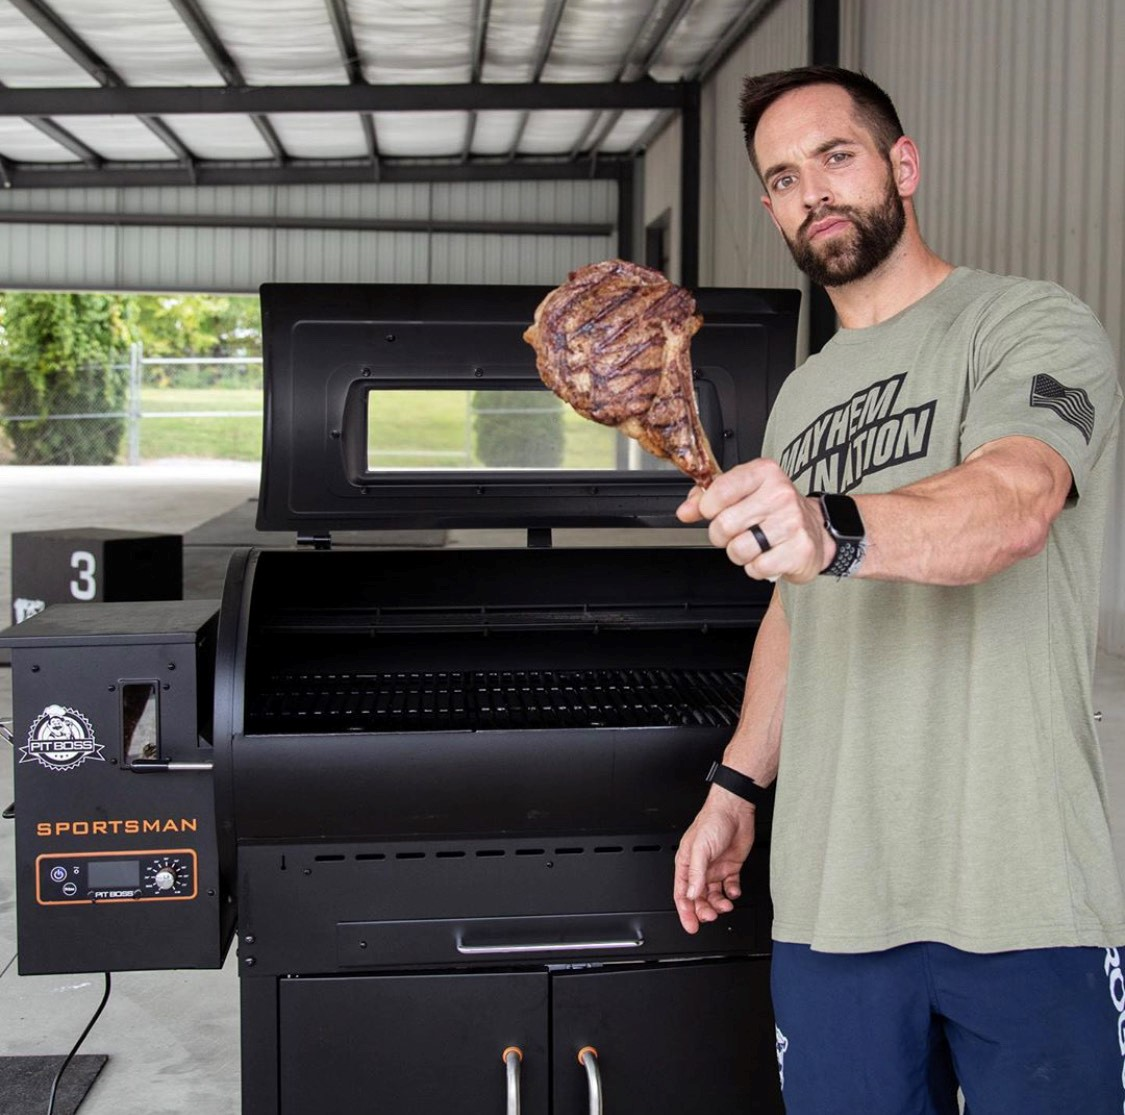 """Please welcome @CrossFit Champion, Rich Froning to #PitBossNation!  """"I'm excited to announce that I have officially joined #PitBossNation to help me master the grill and keep things exciting on the table."""" - @richfroning  Share your tips & tricks 👇 https://t.co/3q4Fa74Vsd"""